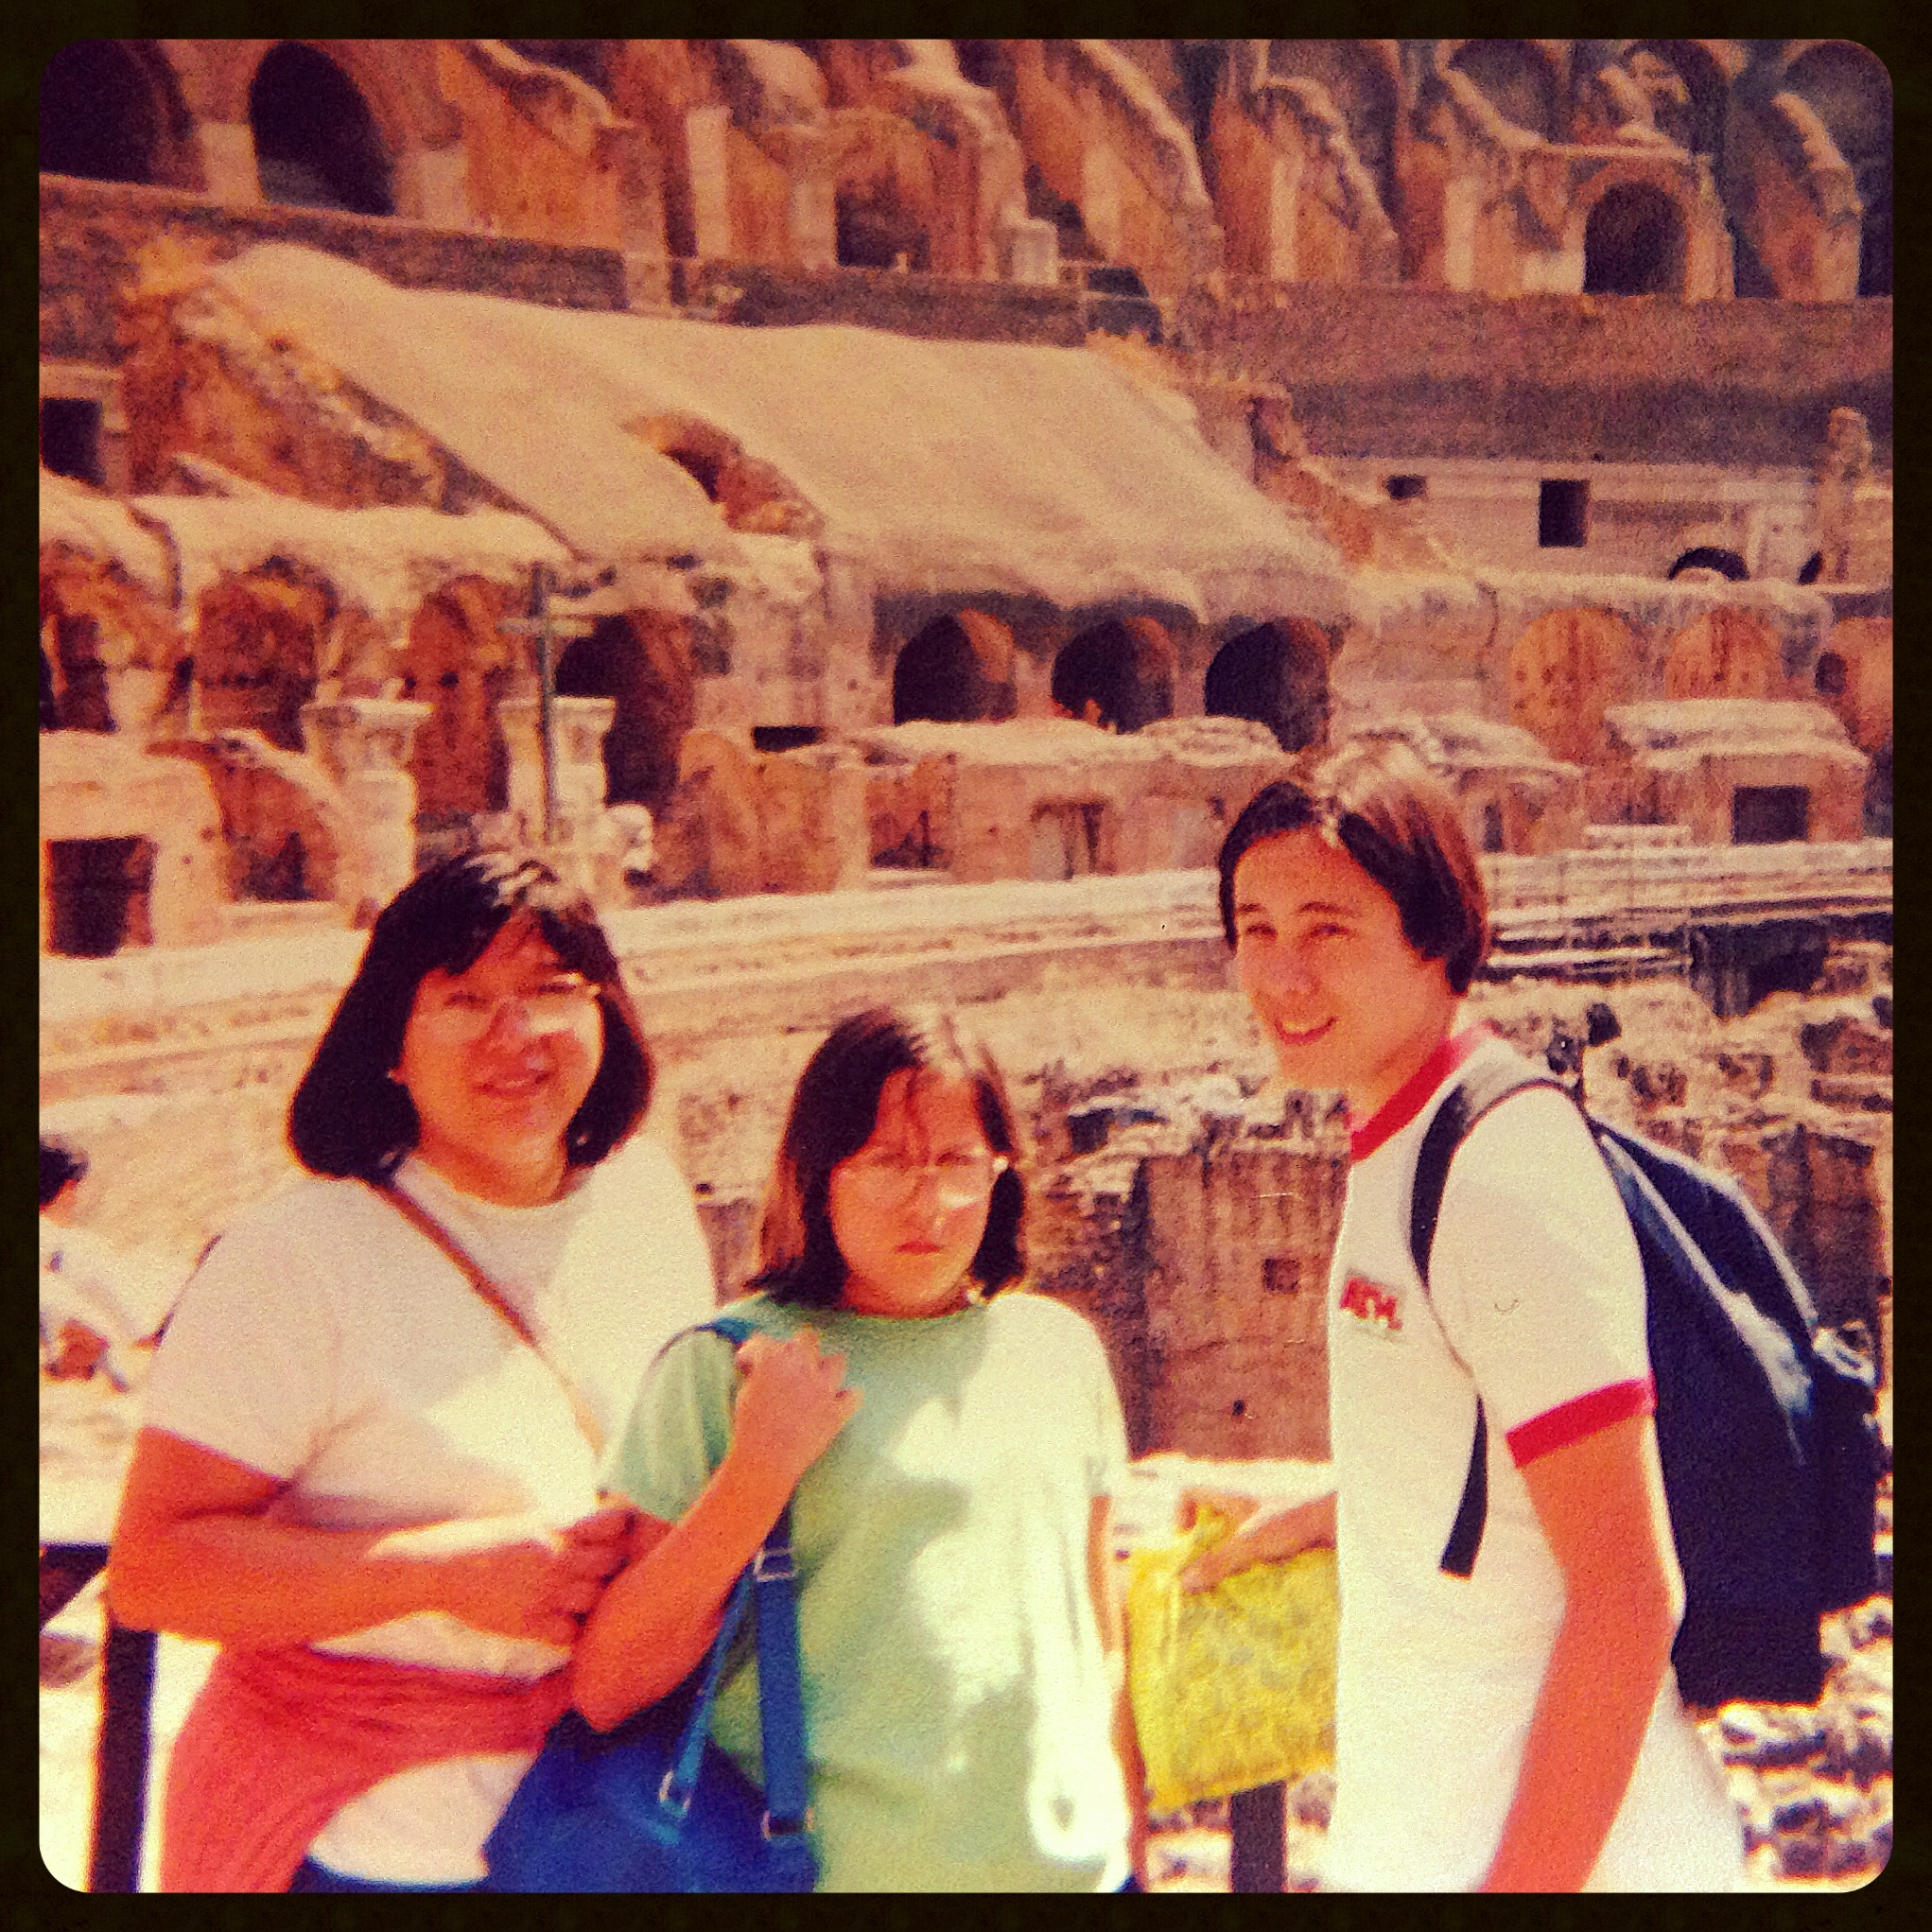 nikki & my mom & i in rome during the 90's. nikki was always so angry. such an angry toddler, nikki! :D jk.